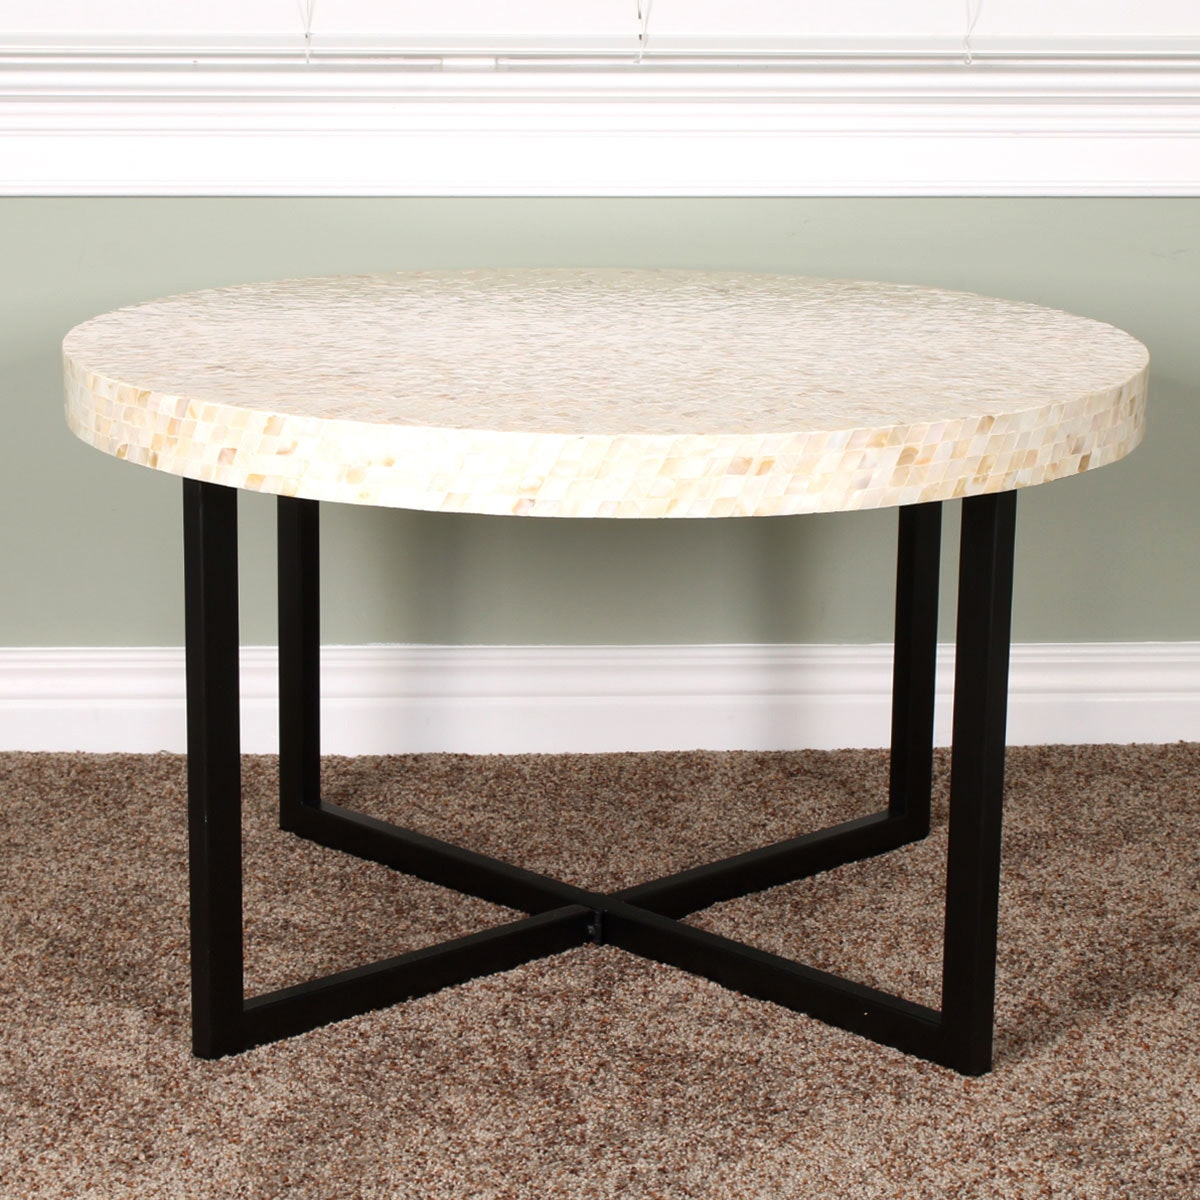 Beau Pier 1 Imports Mother Of Pearl Round Coffee Table ...